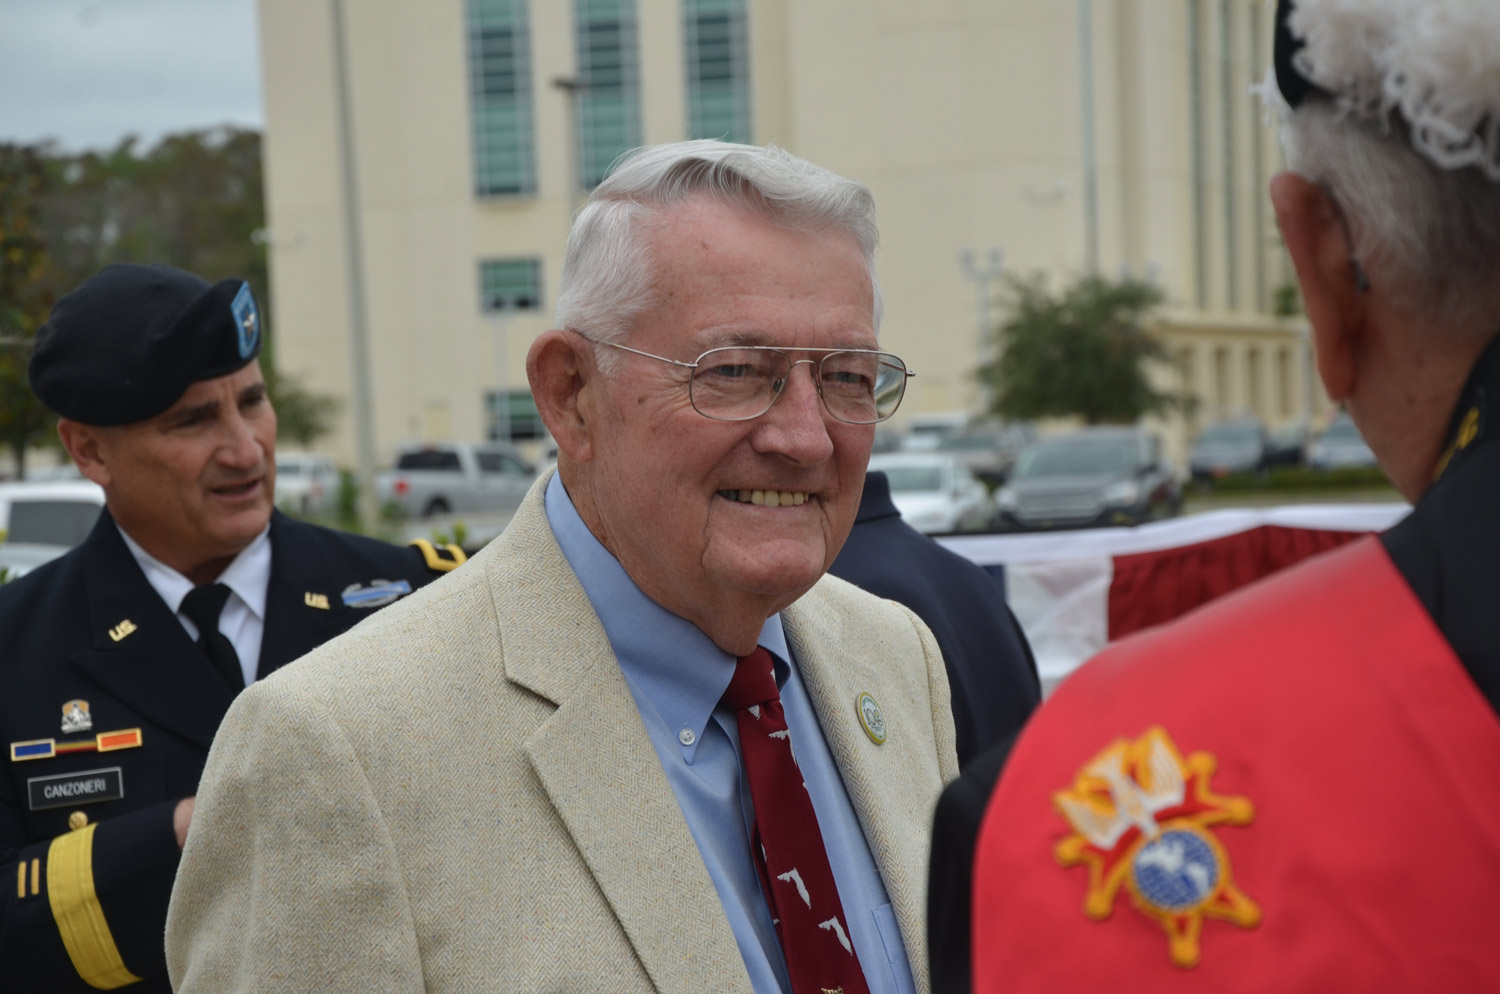 Sisco Deen, Flagler County's Veteran of the Year, served two decades in various branches of the military. His three sons have also served. In the background is Army National Guard Brigadier General Mike Canzoneri, who was today's keynote speaker. (© FlaglerLive)